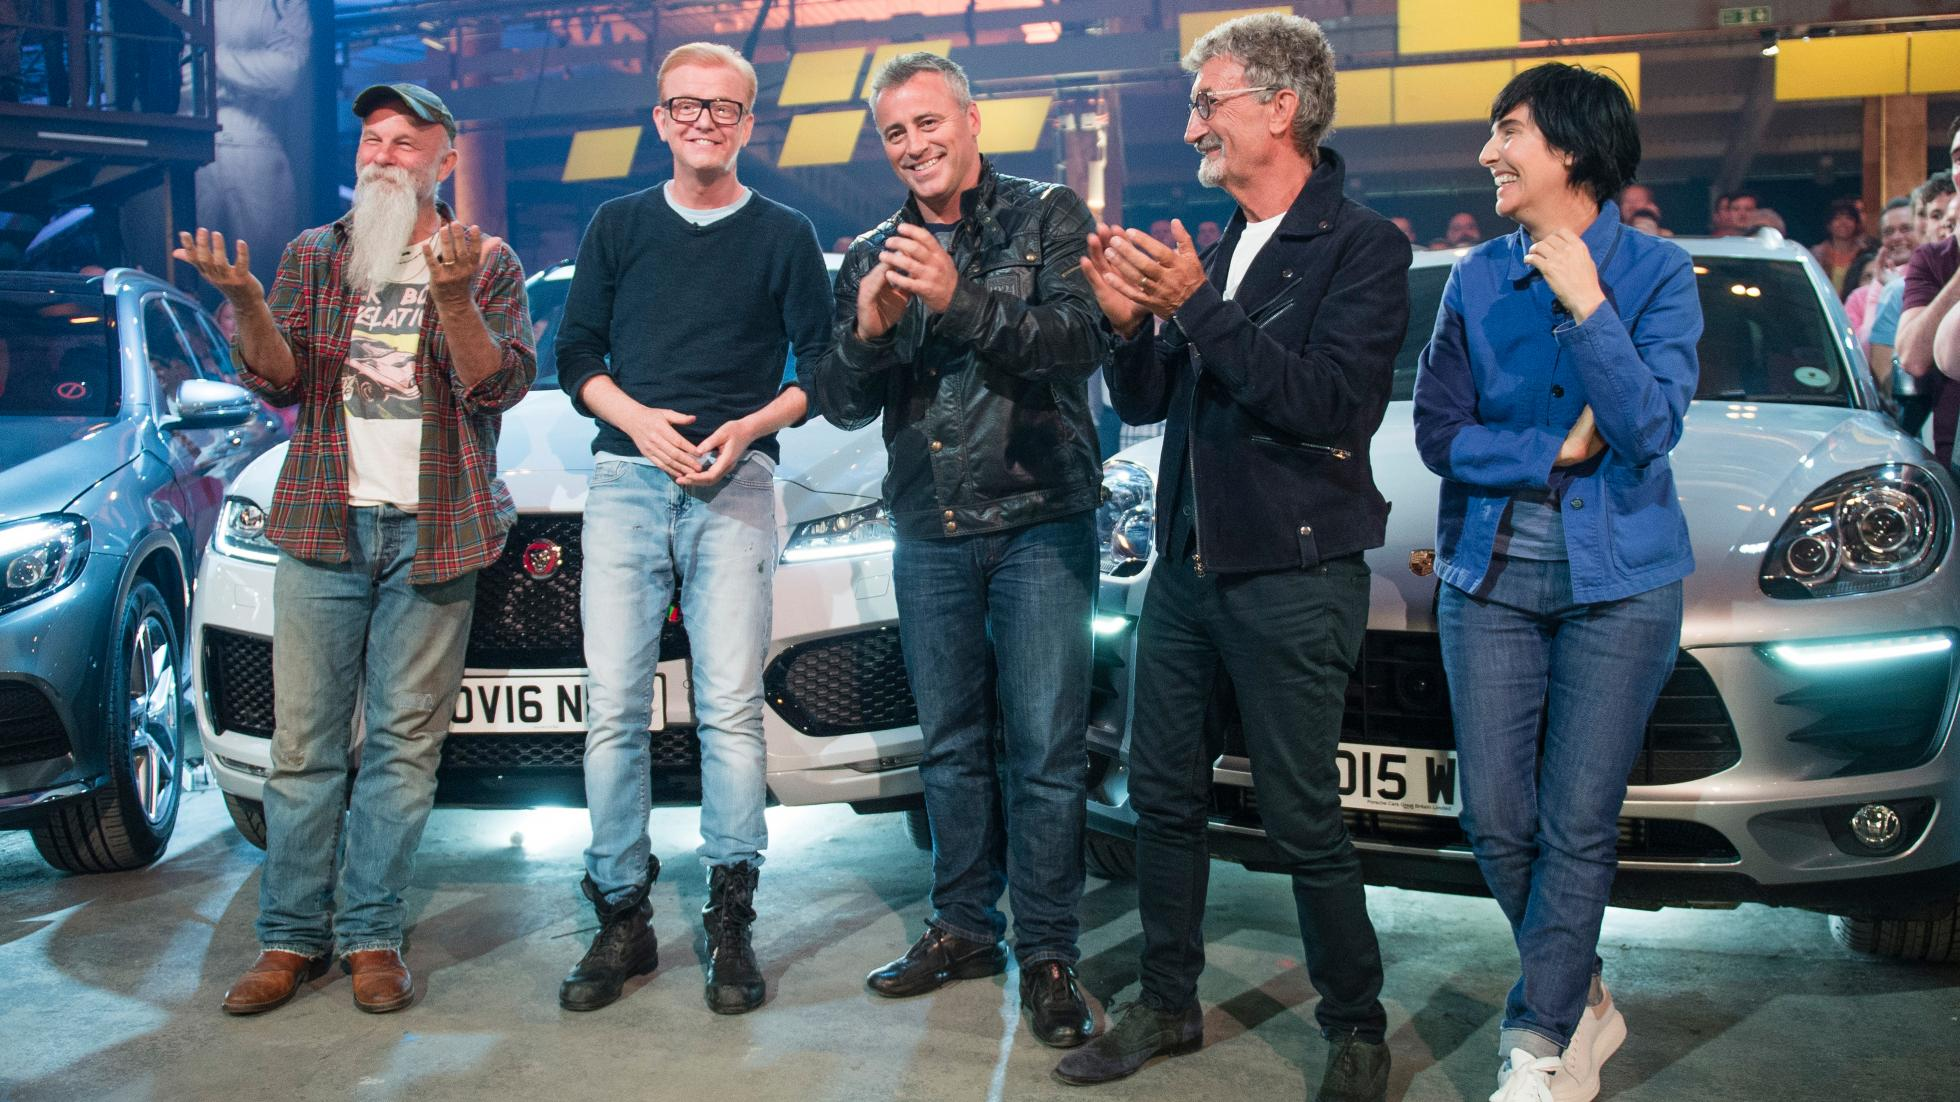 new top gear season 23 off to a bad start chris evans moved back performancedrive. Black Bedroom Furniture Sets. Home Design Ideas